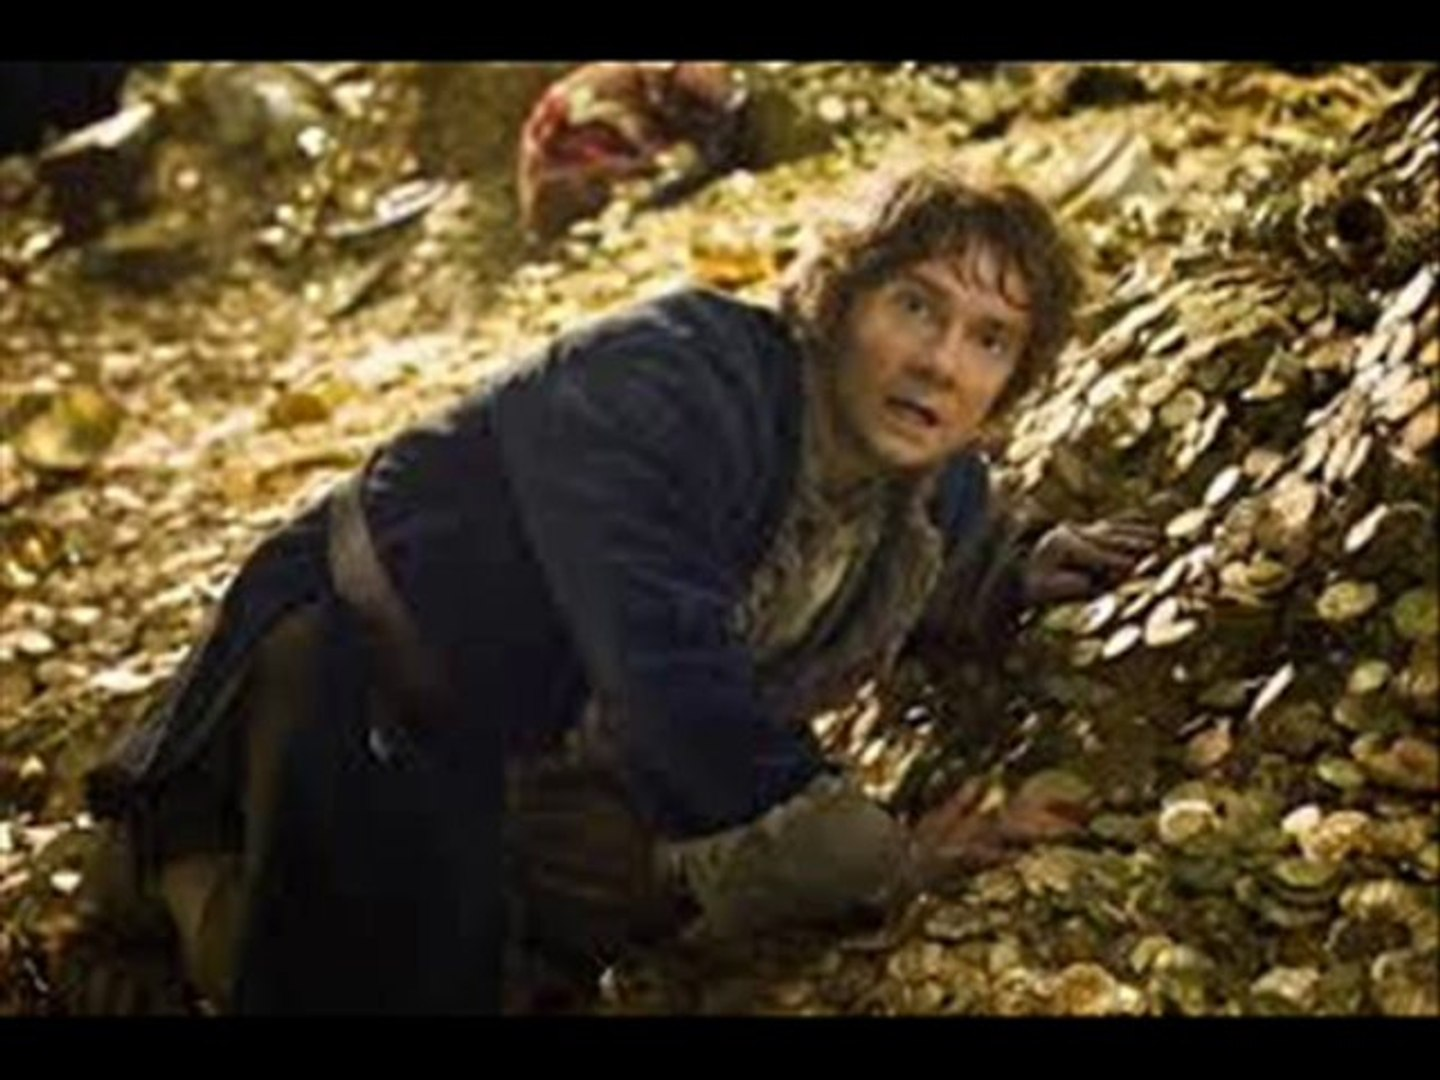 Watch The Hobbit The Desolation Of Smaug English Documentary Online Full HD Movie Free 2013